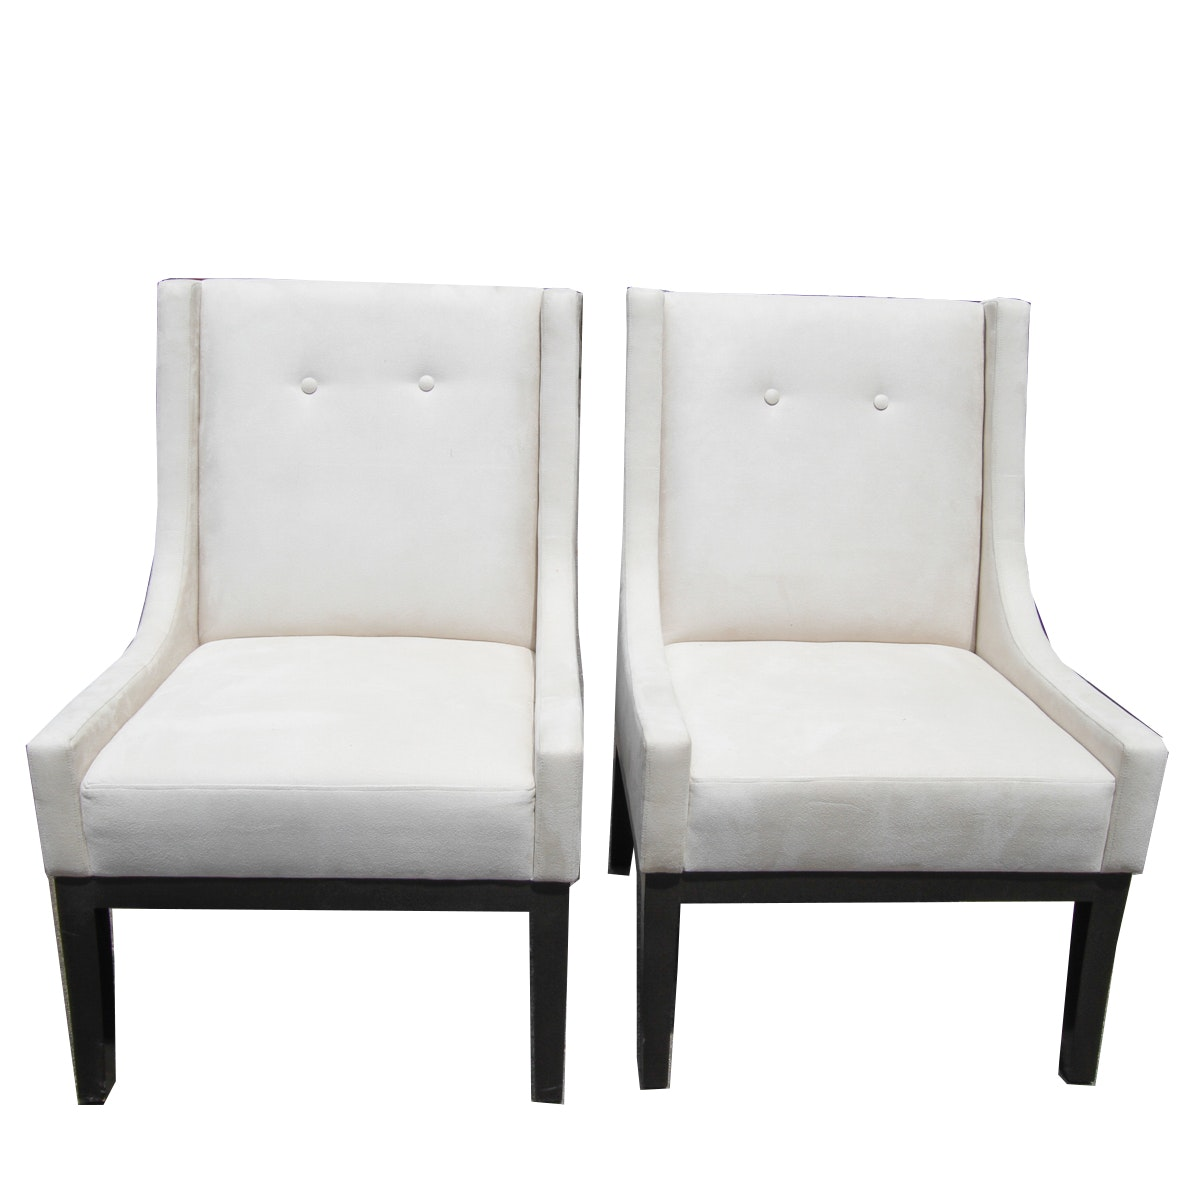 White Upholstered Armchairs